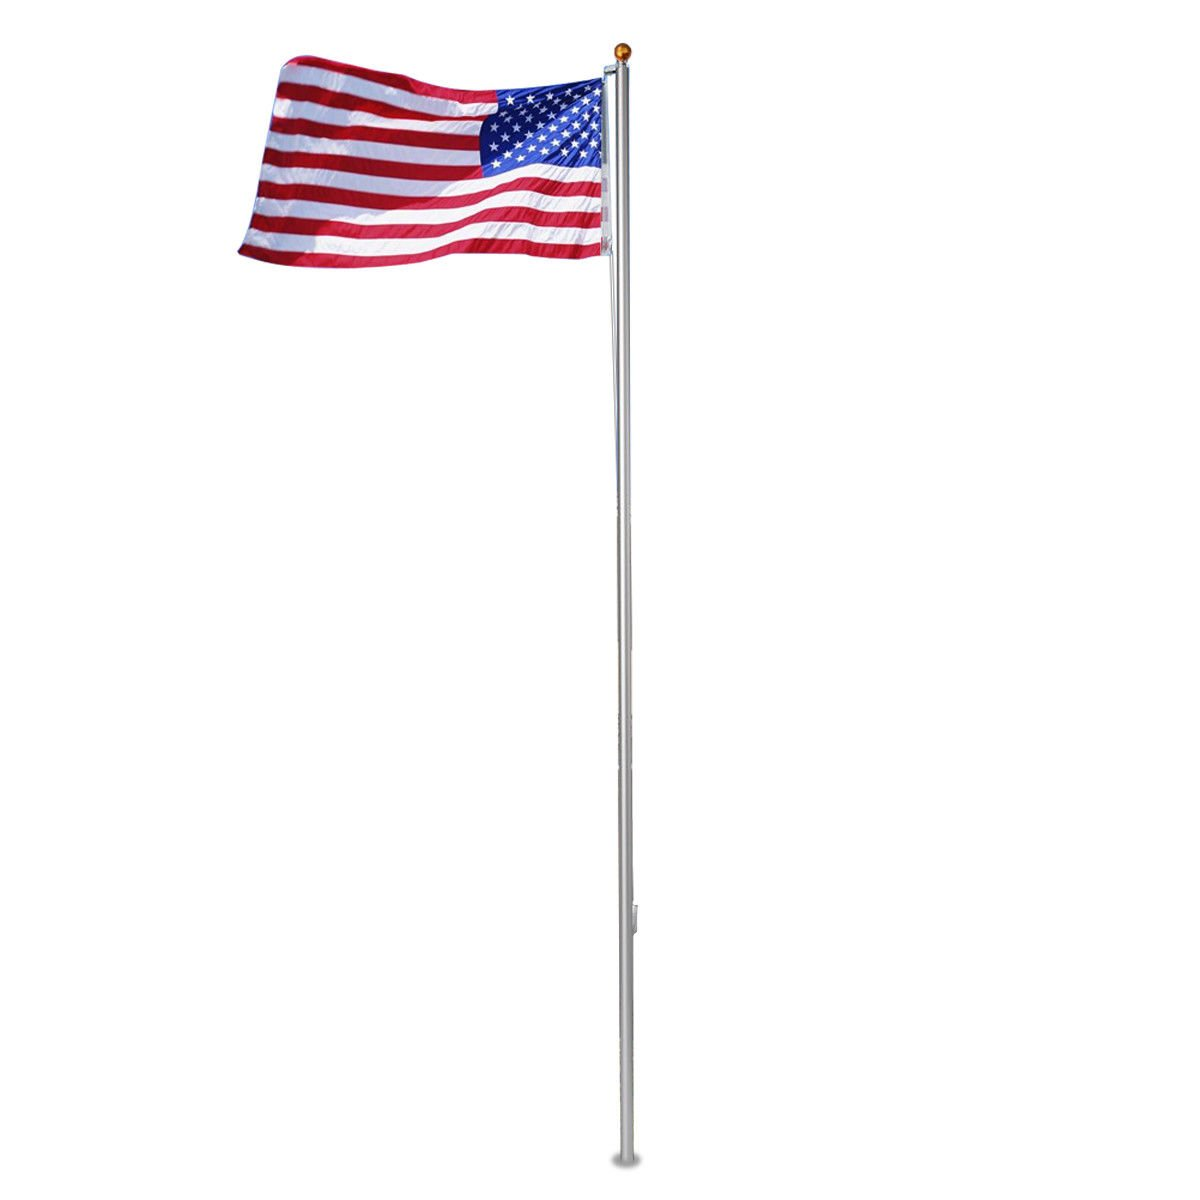 America Flag Halyard Rope 25FT Aluminum Sectional US Flagpole Kitw/ Gold Ball Finial